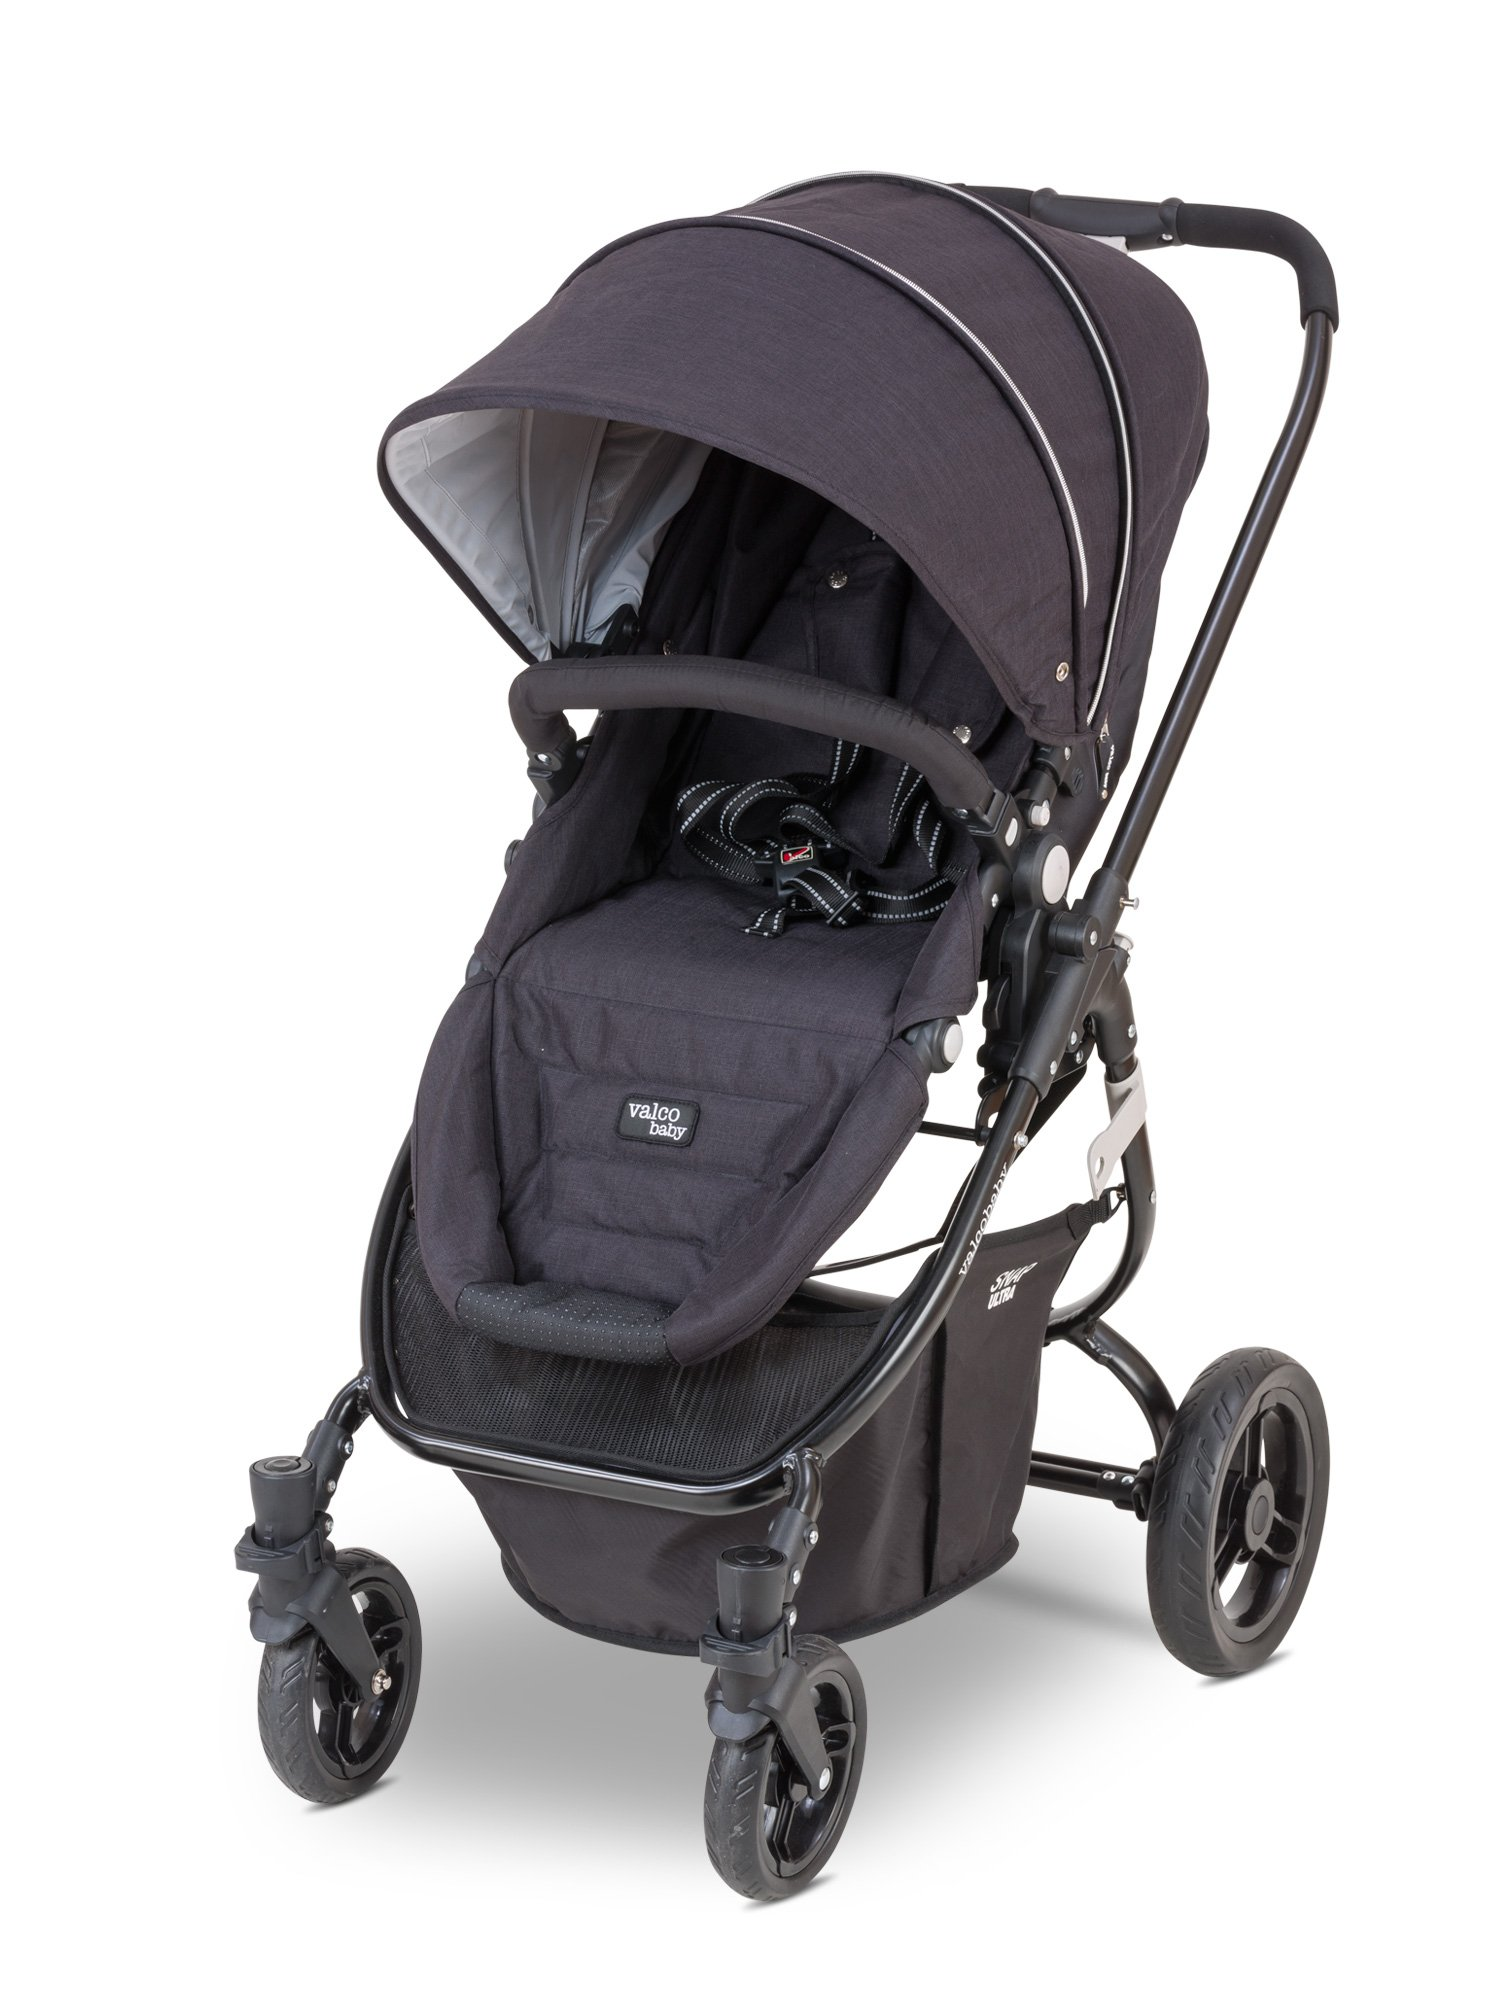 Valco Baby Snap Ultra Lightweight Reversible Stroller (Black Night) by Valco Baby (Image #1)